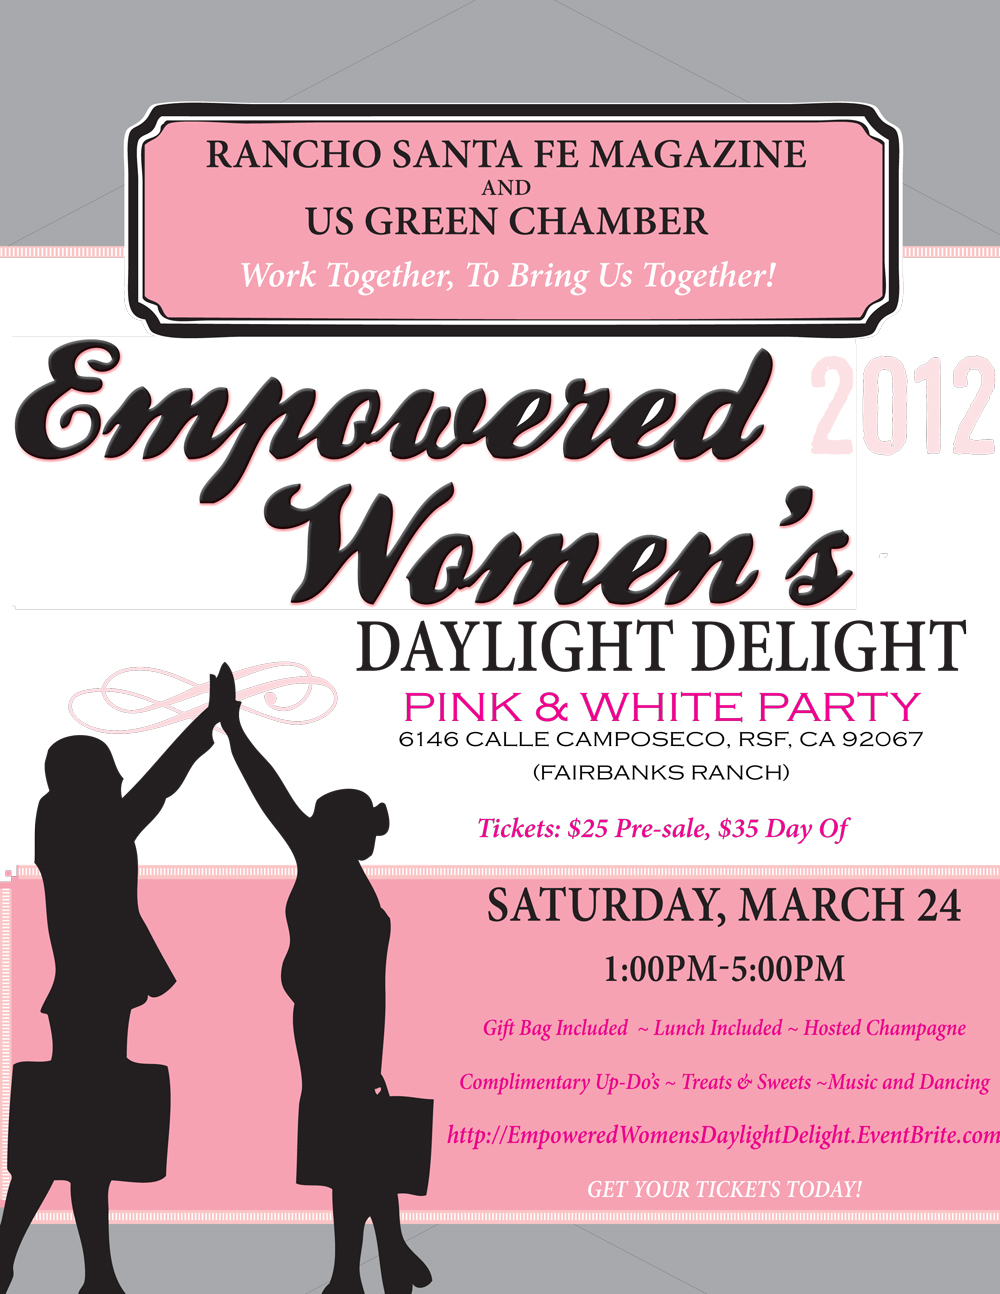 Empowered-Women's-Daylight-Delight-FLYER